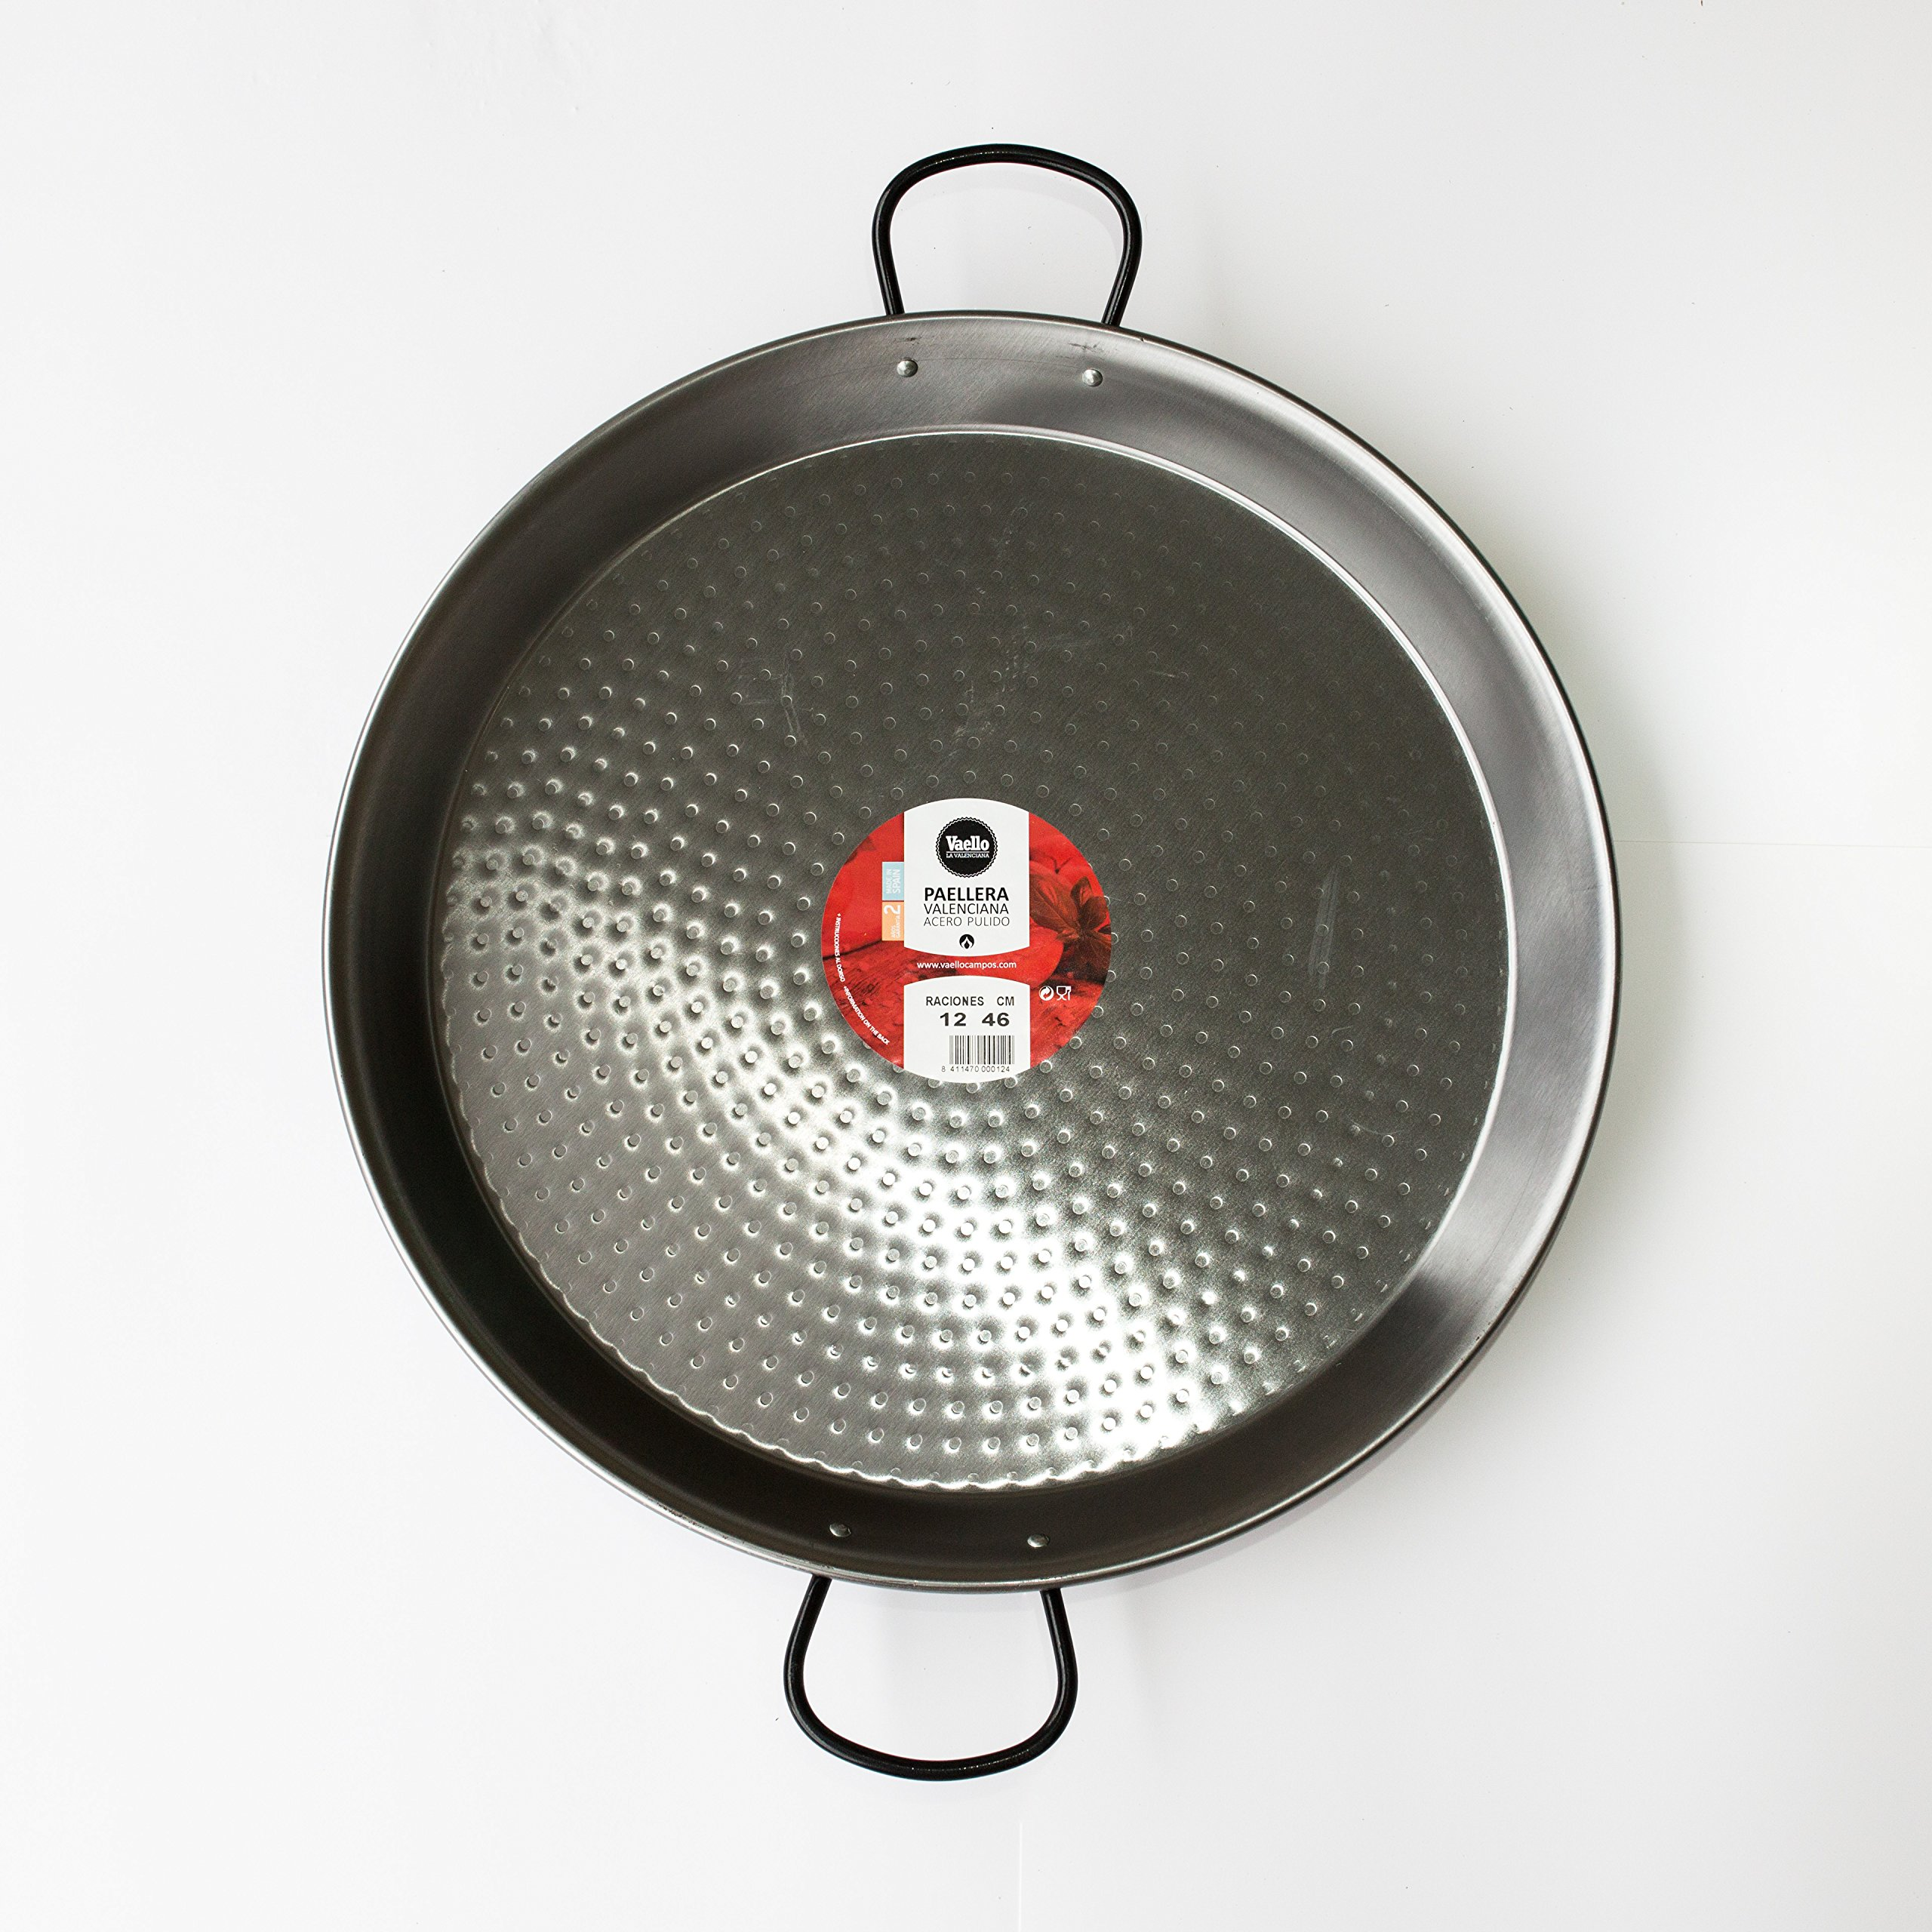 Polished Steel Valencian paella pan 18Inch / 46cm / 12 Serving